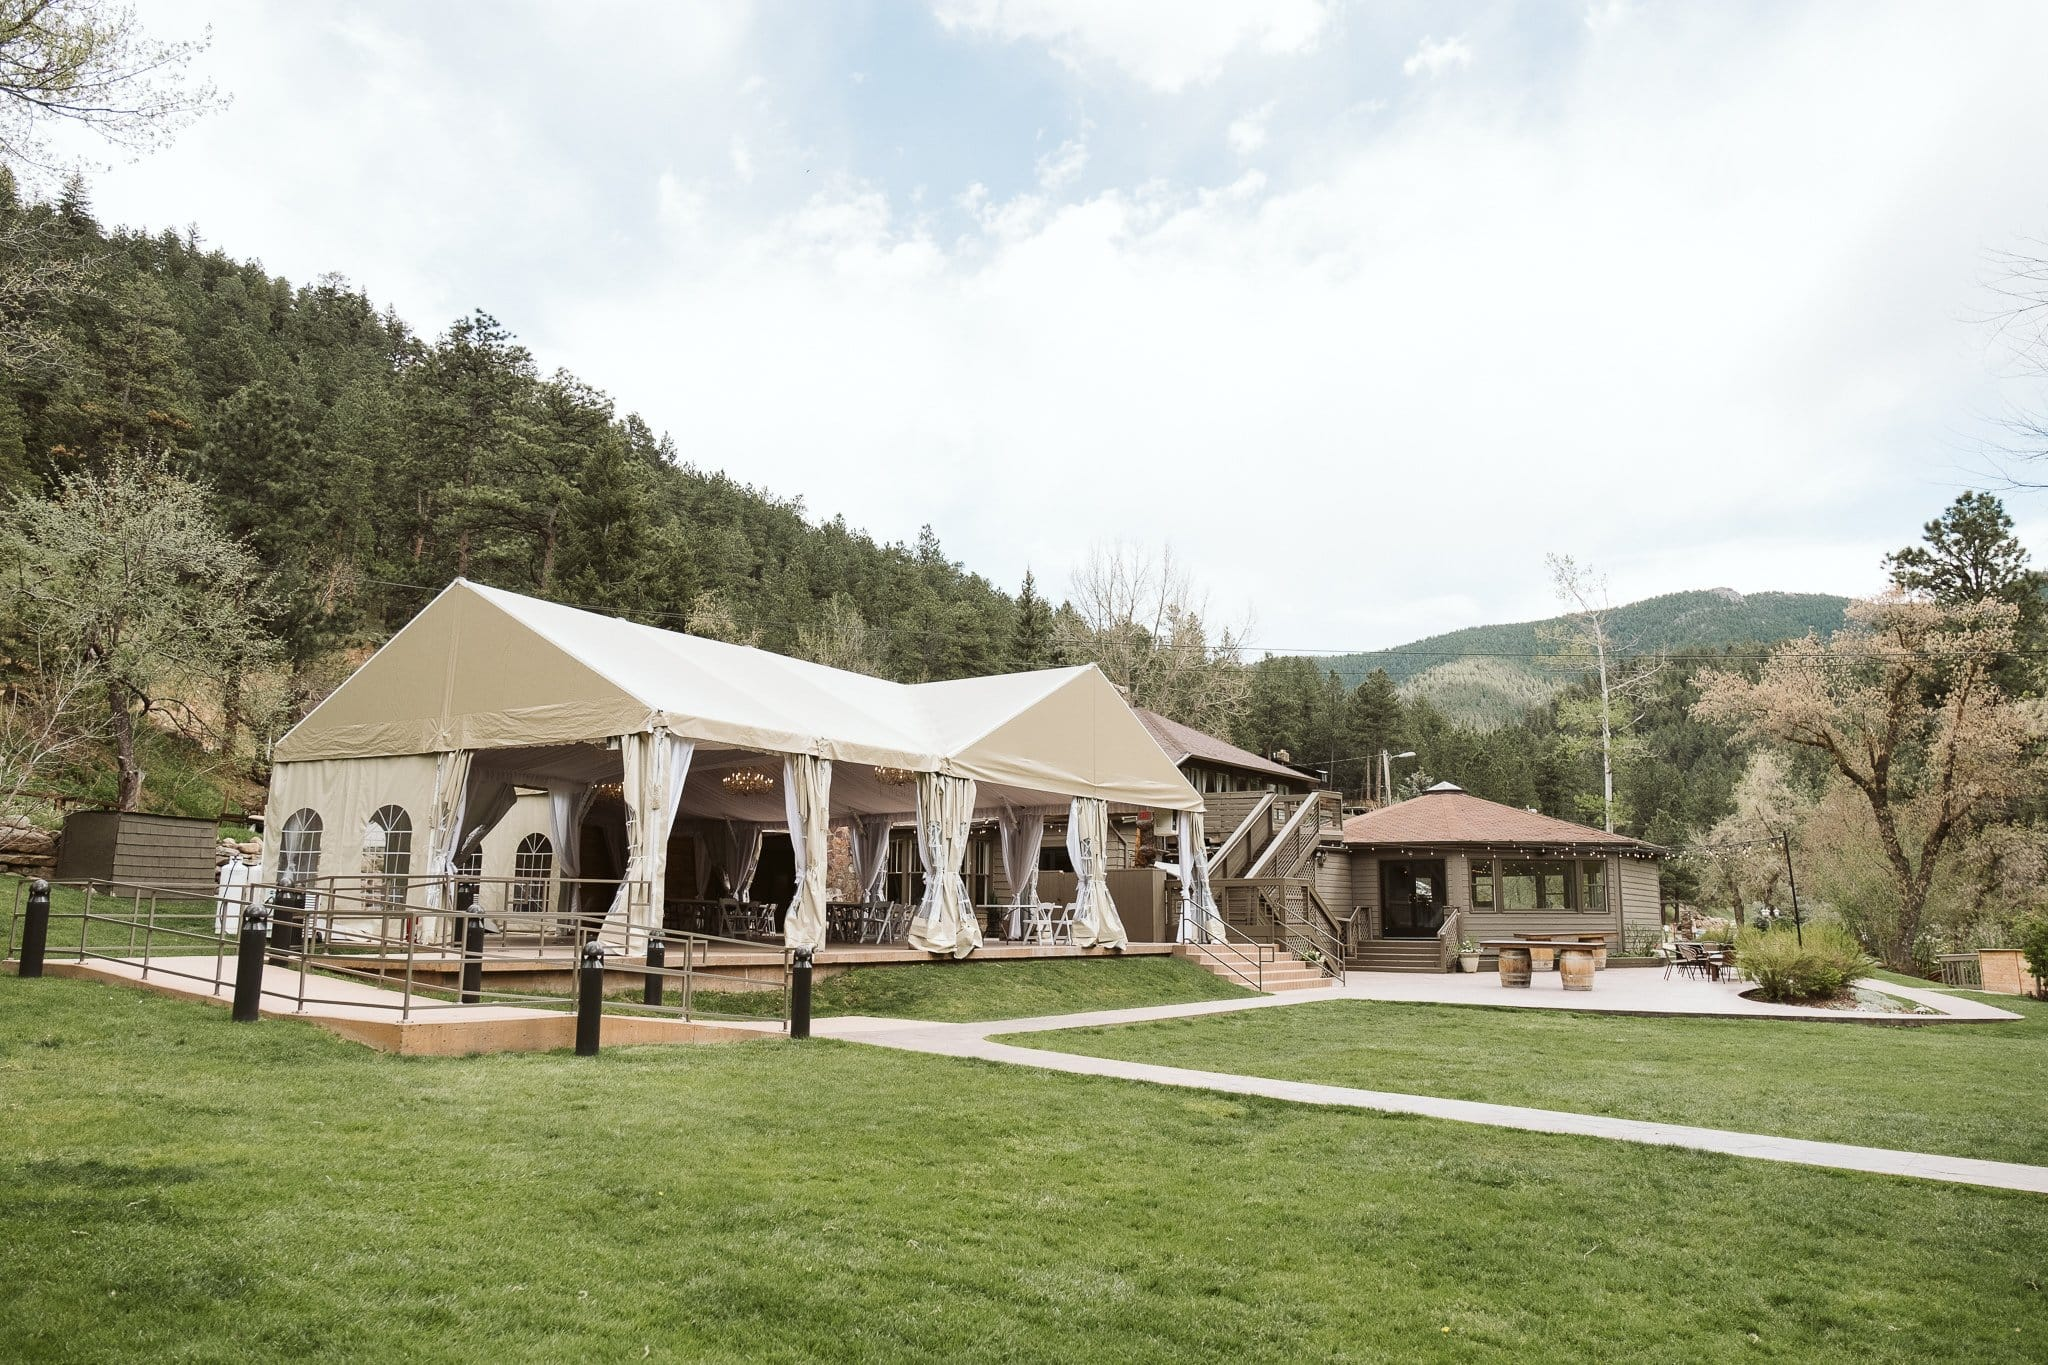 wedgewood-boulder-creek-wedding-venue-5